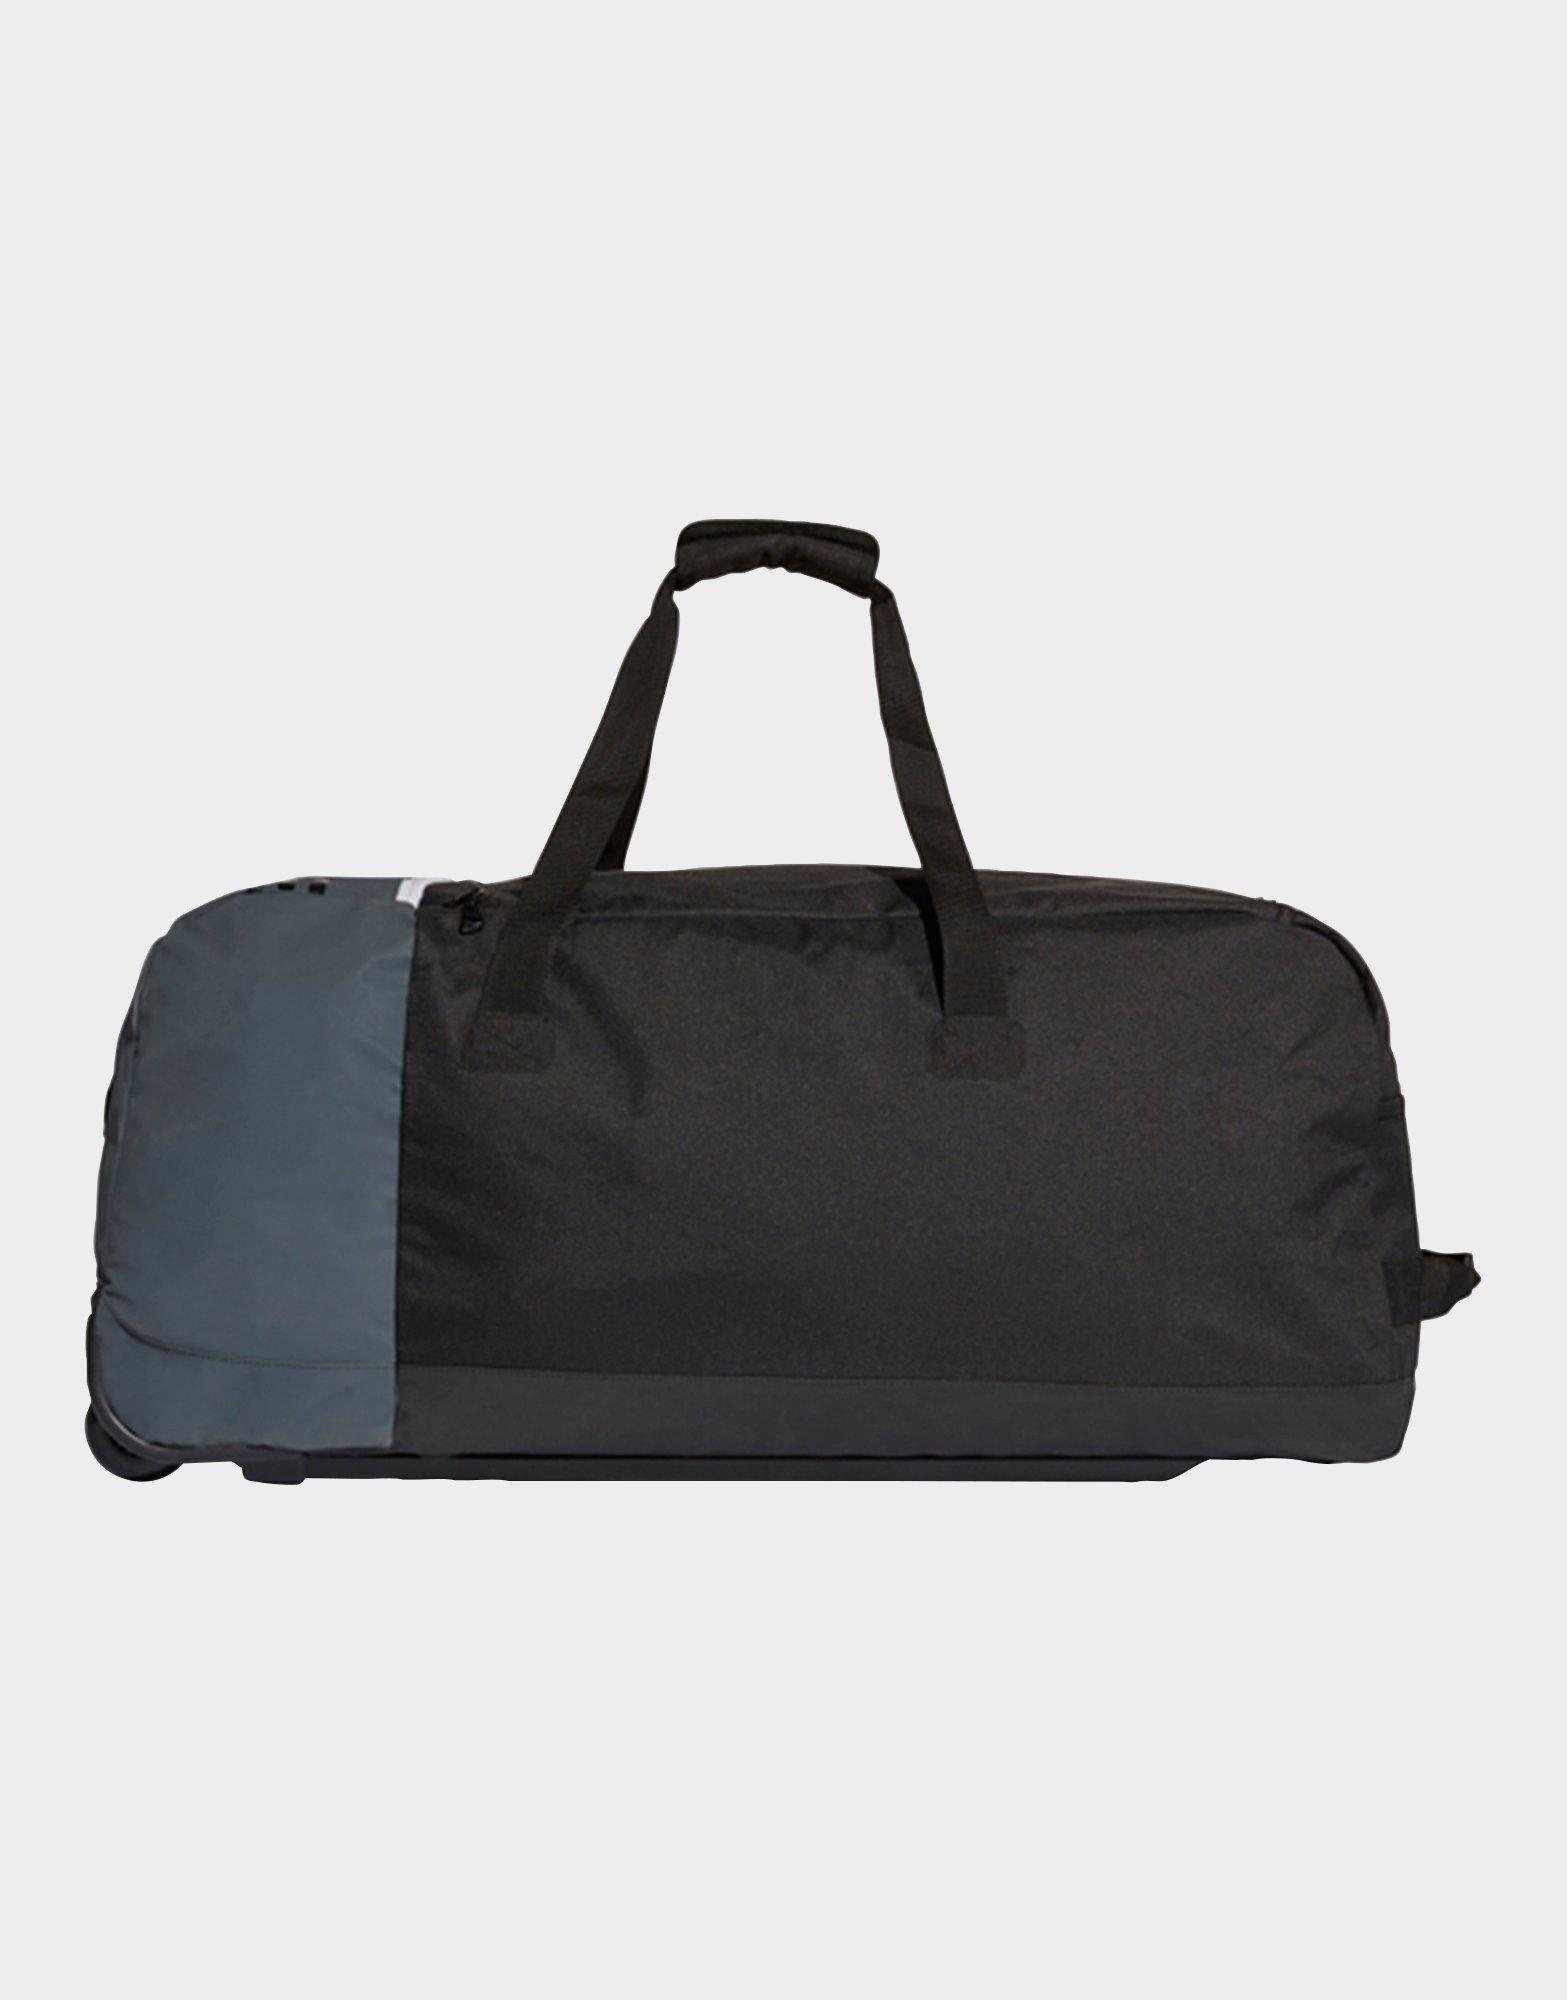 Lyst - adidas Tiro Team Bag With Wheels Xl in Black for Men 0d3e0edecddf2